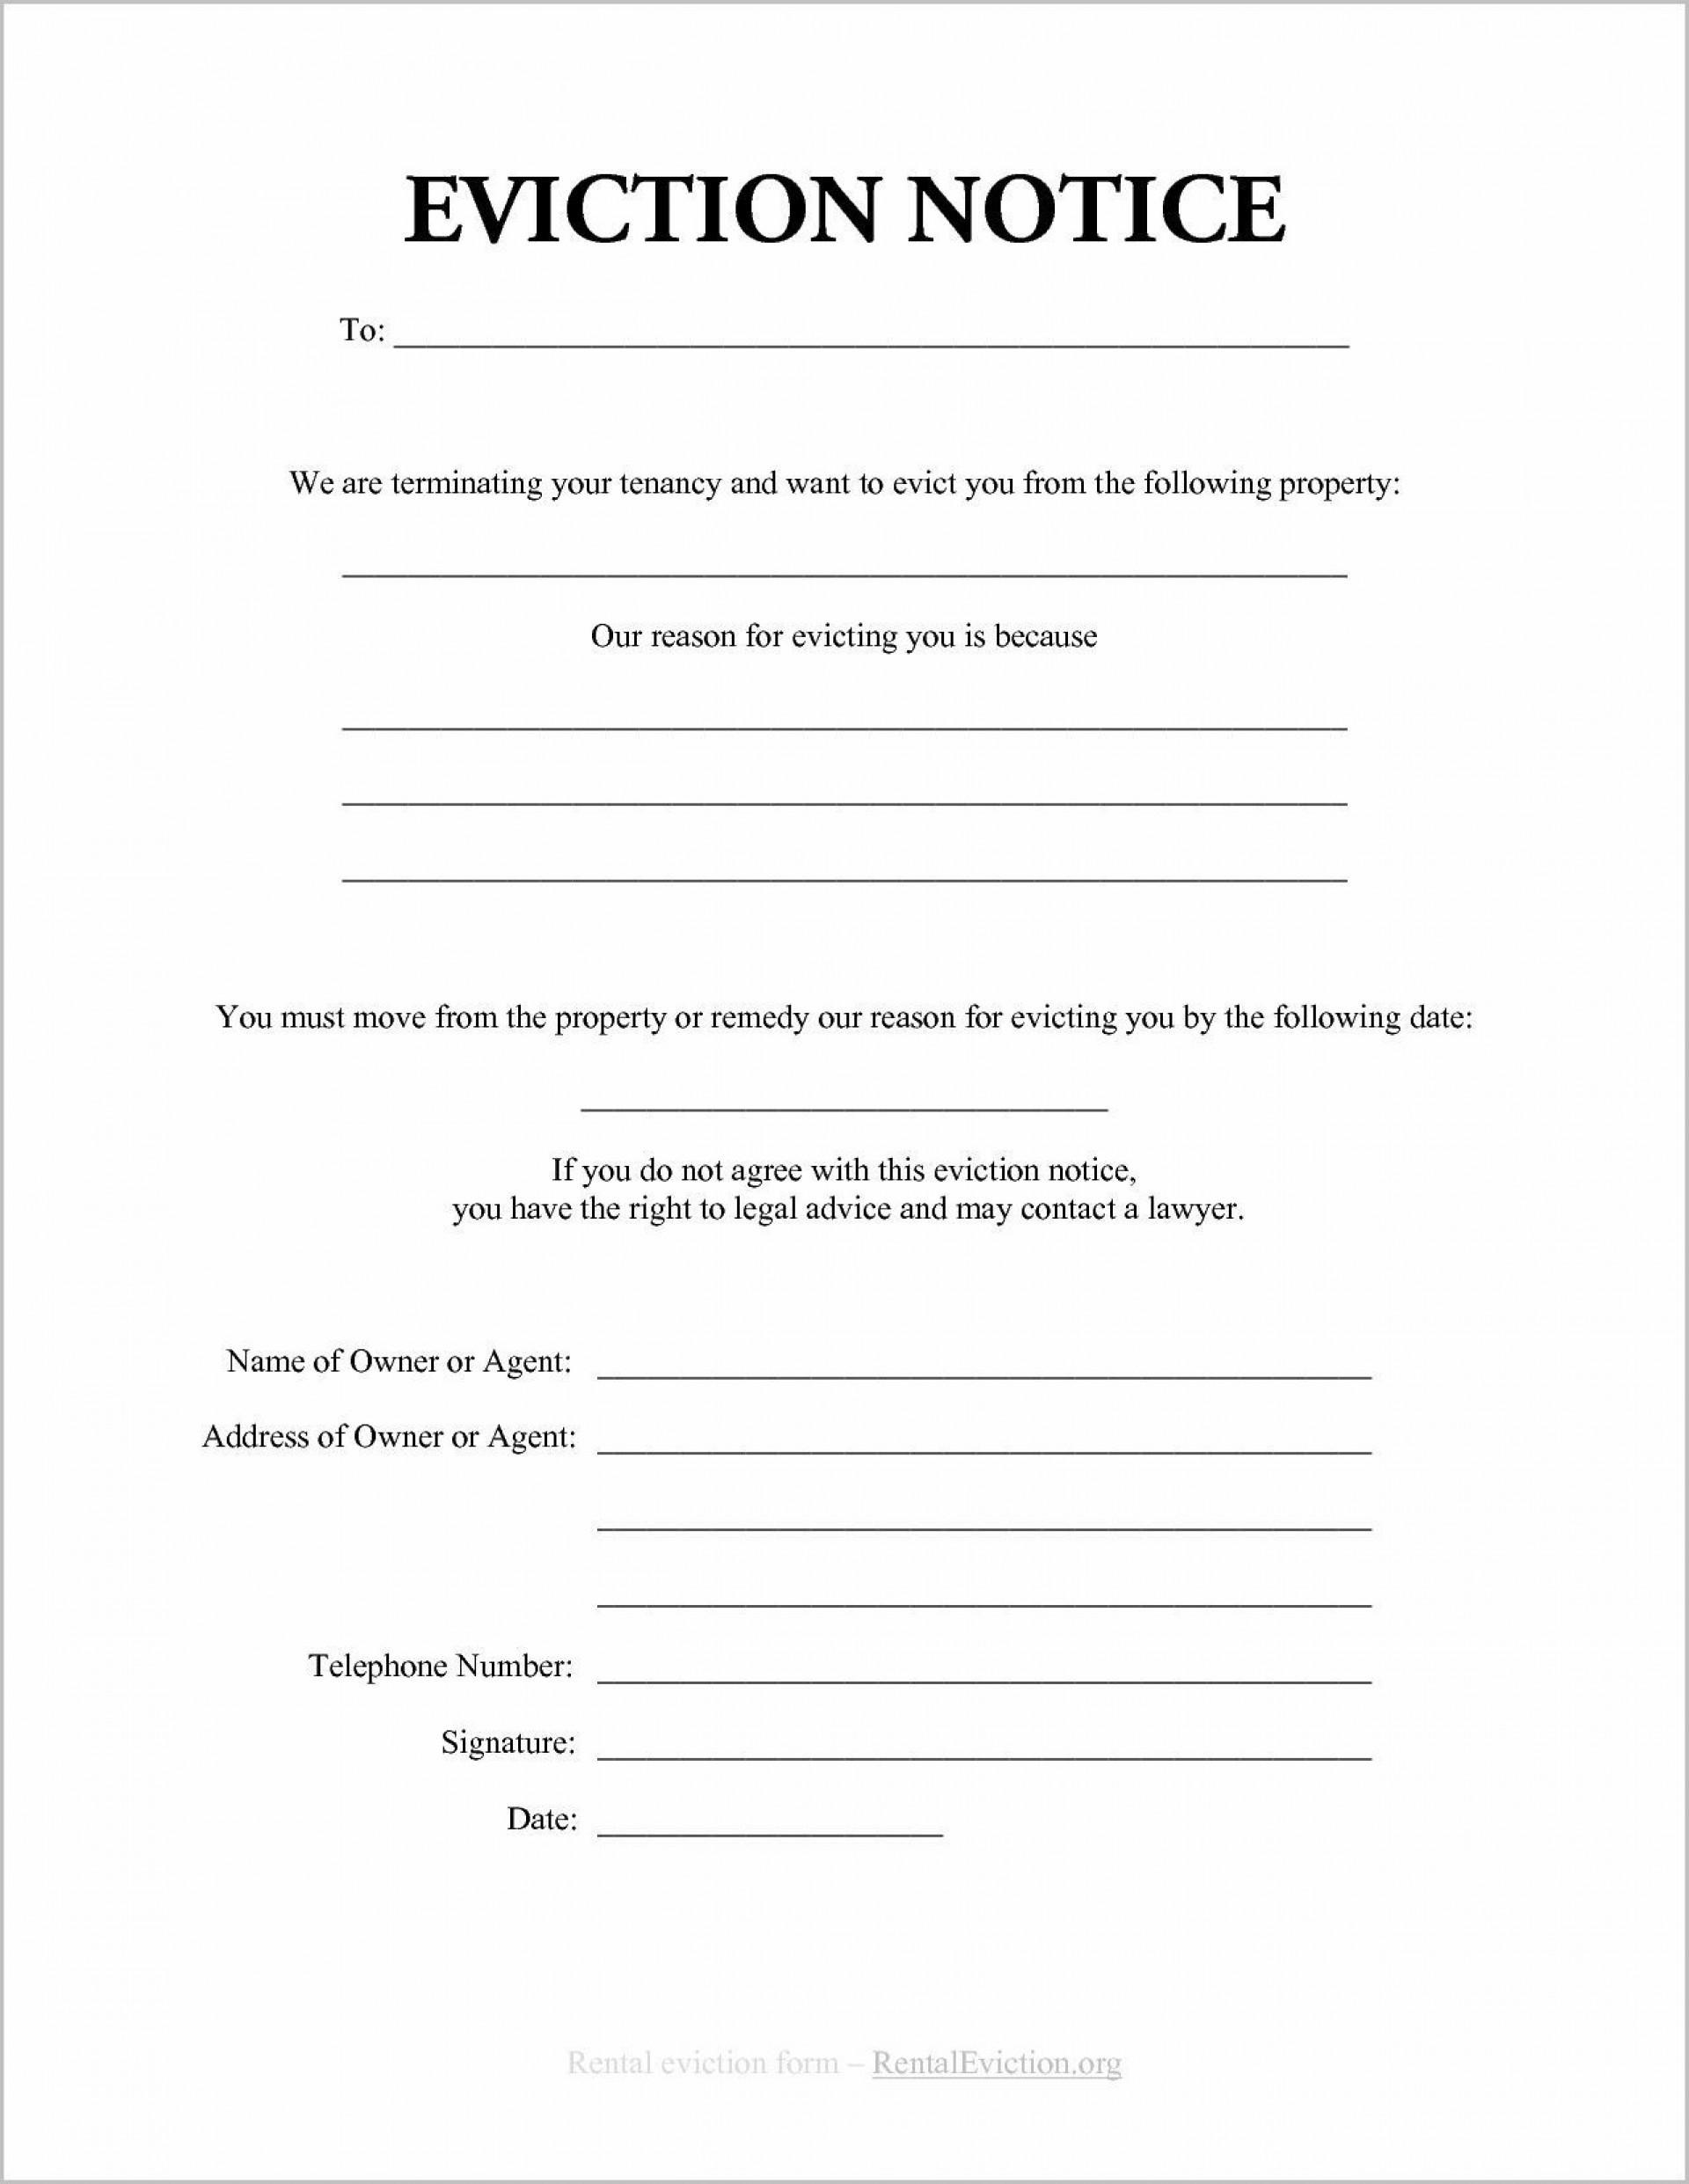 Eviction Notice Template Word South Africa